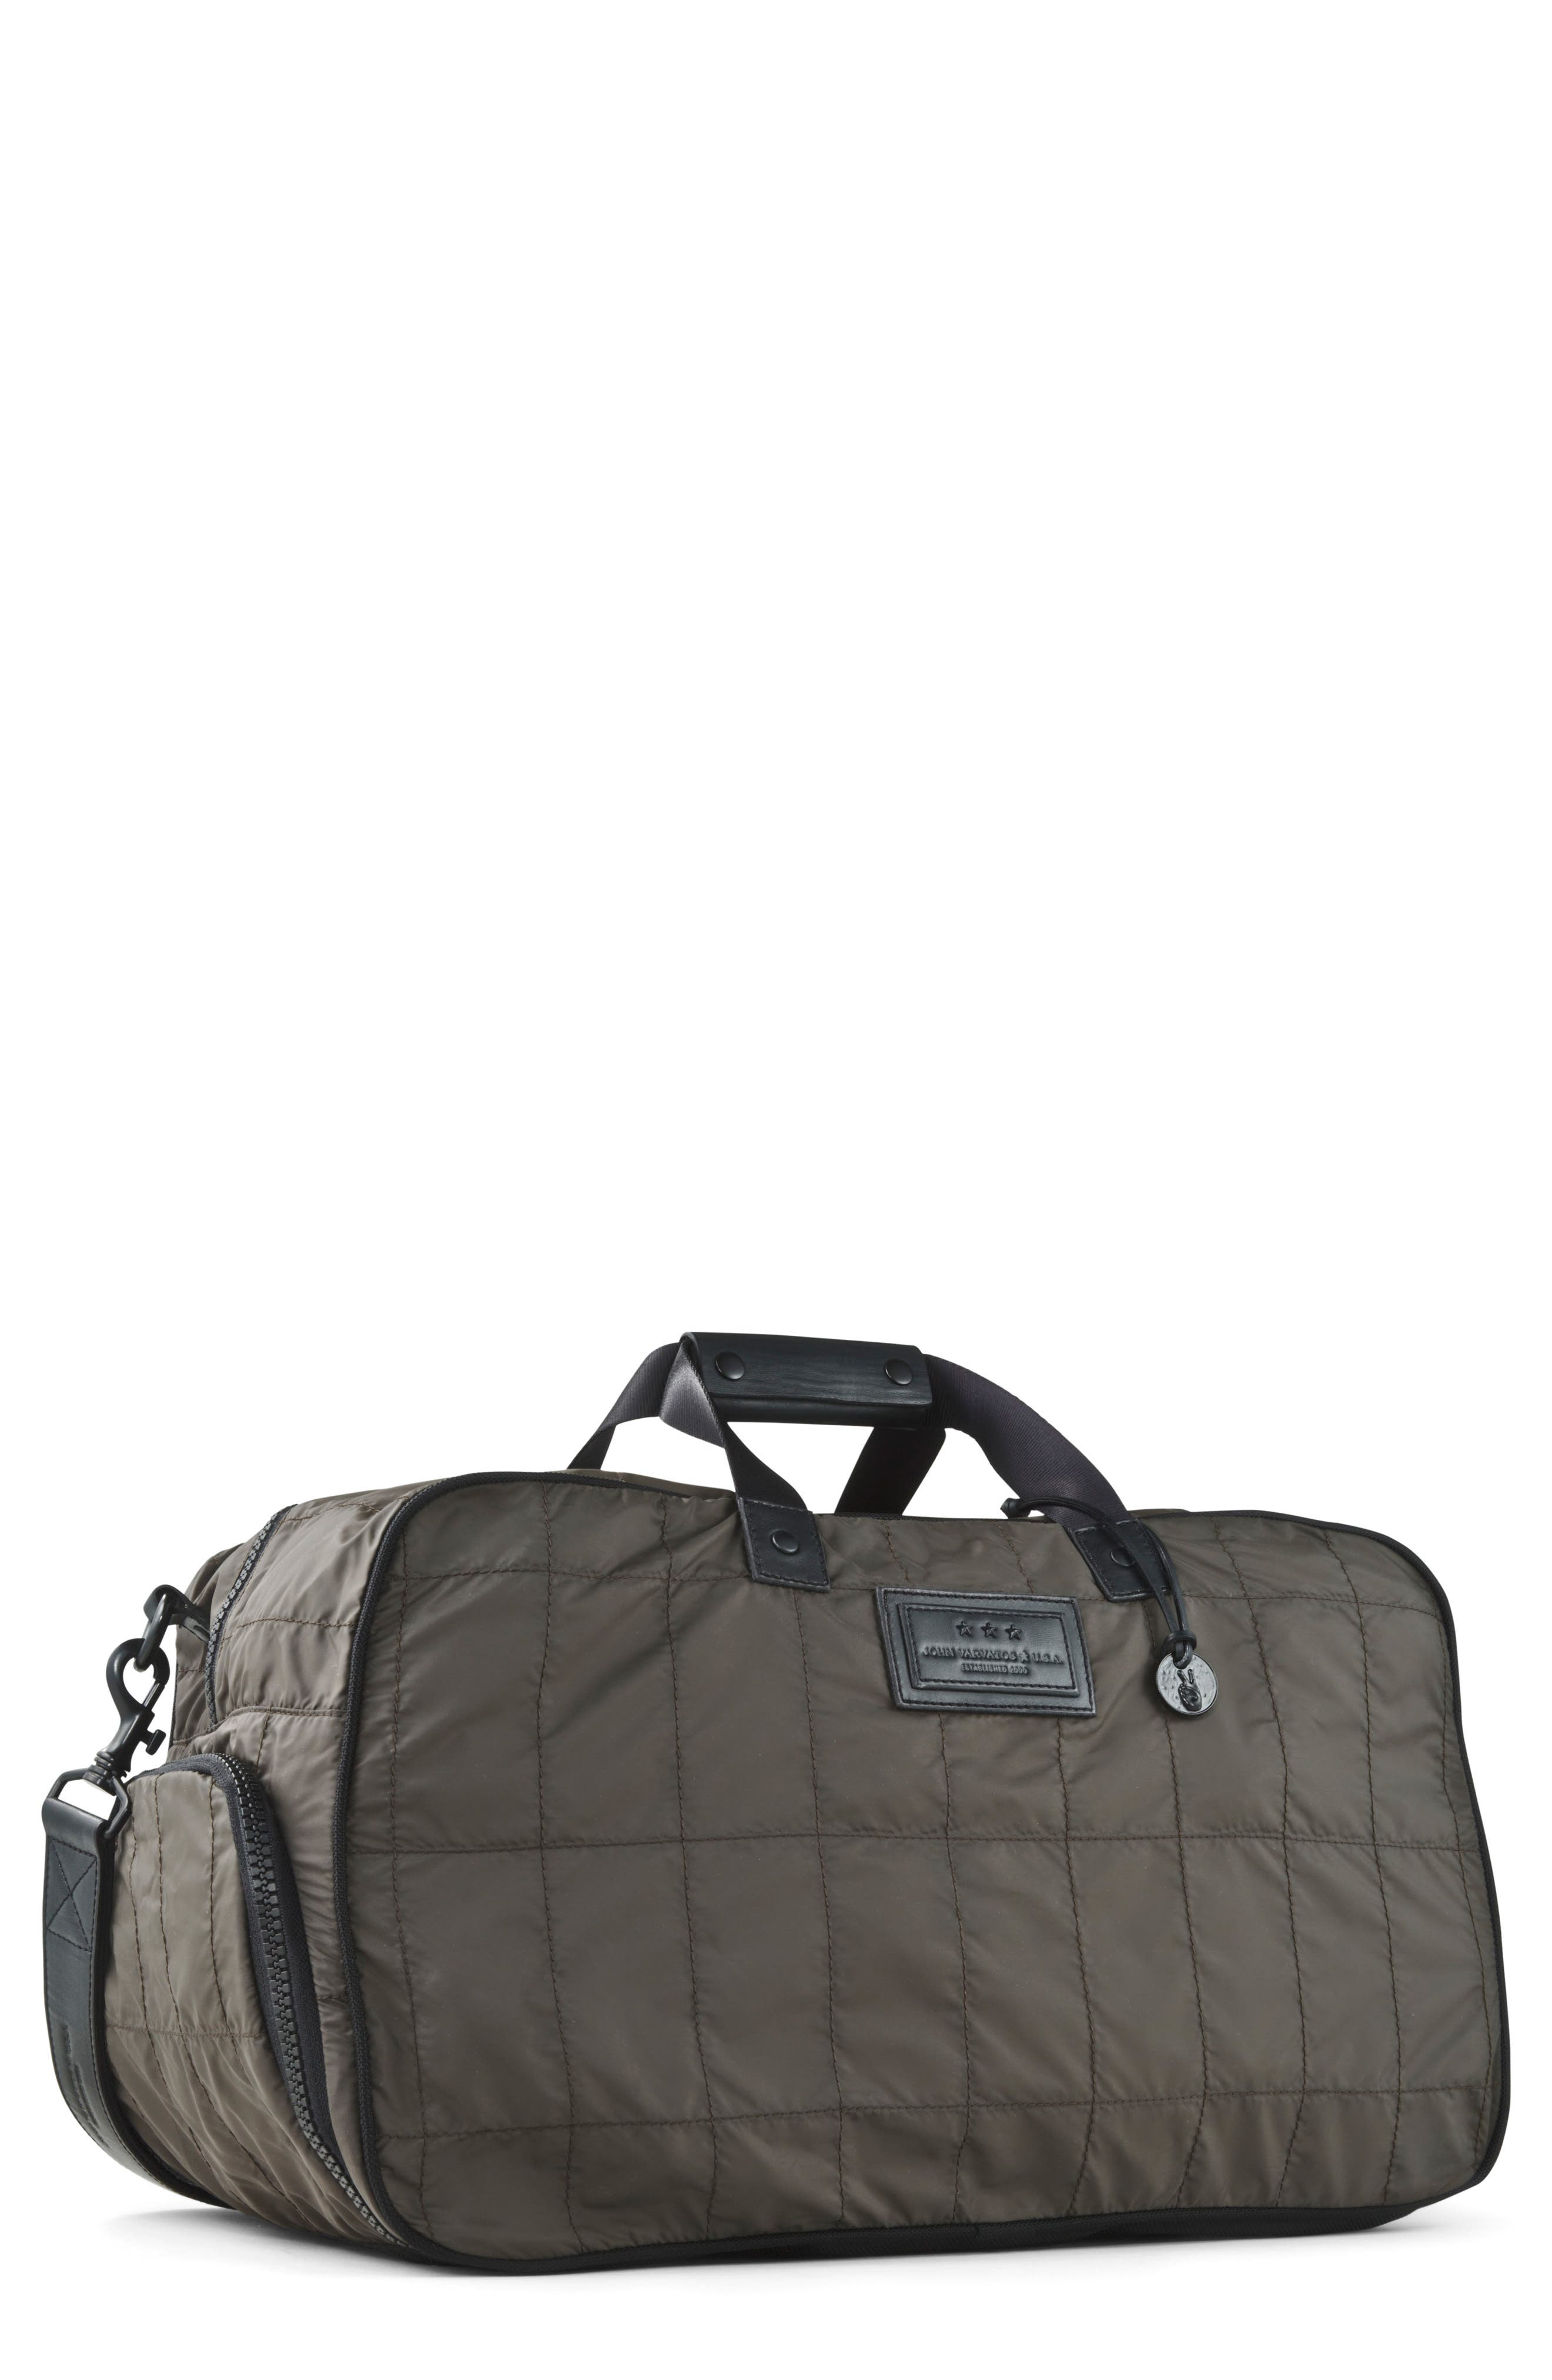 Quilted Nylon Duffel,                             Main thumbnail 1, color,                             Army Green